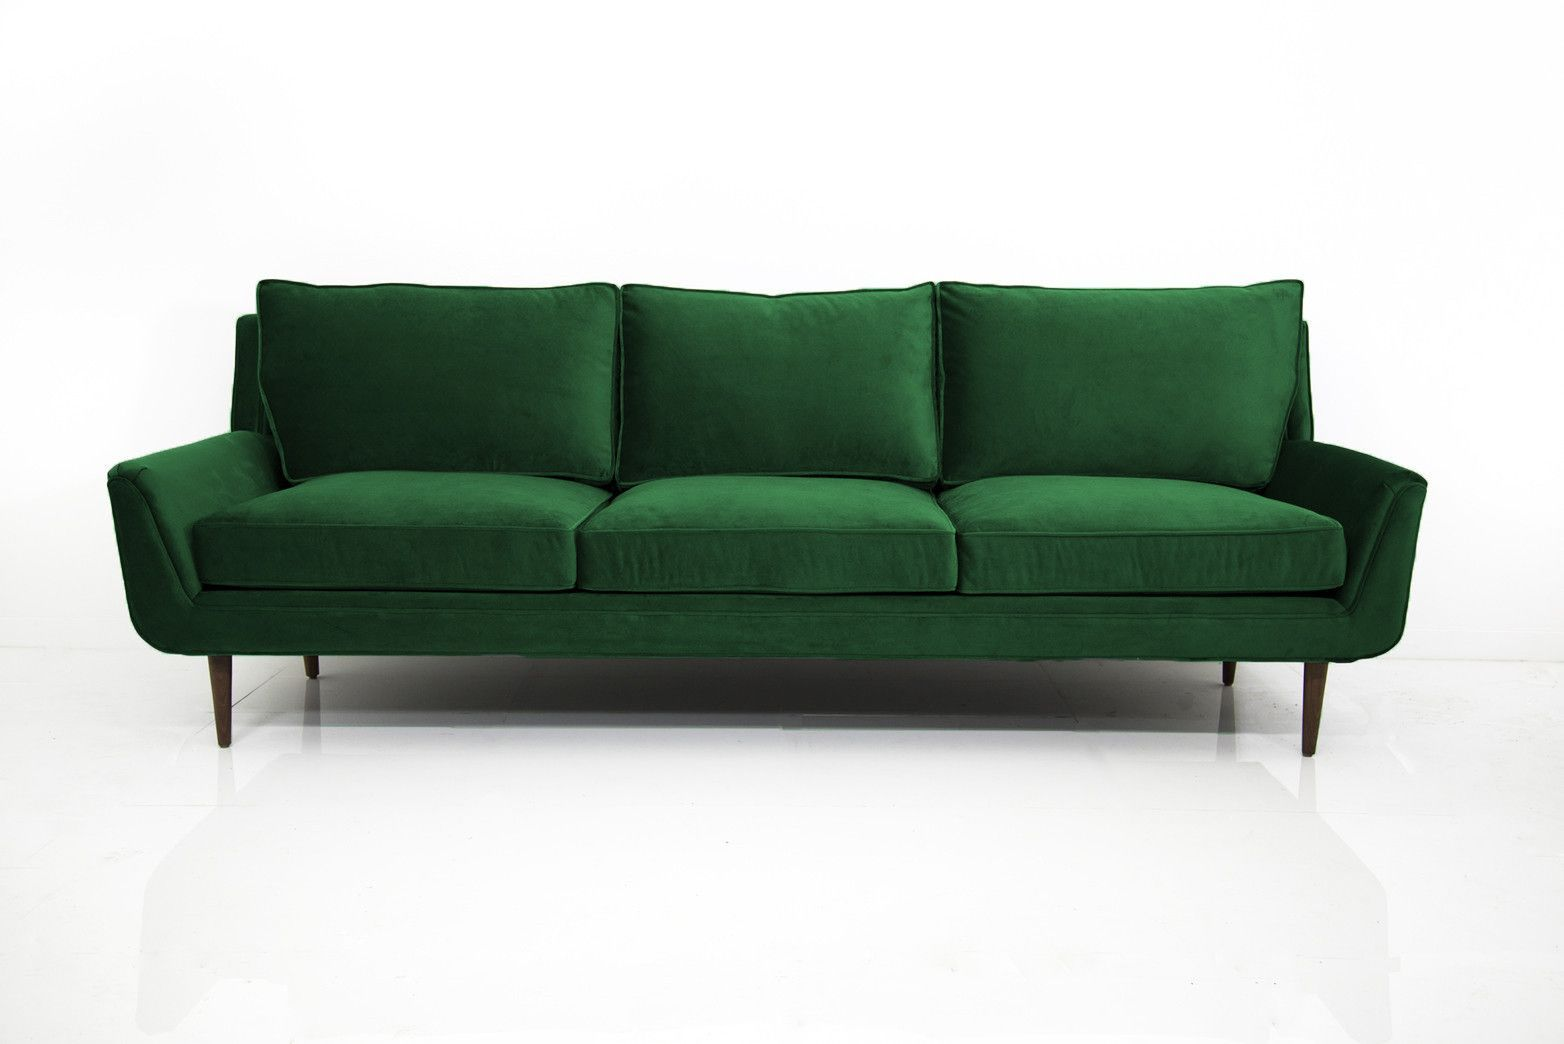 the flagship member of our modern scandinavian design collection the stockholm sofa is a glamorous yet simply designed sofa with clean simple lines